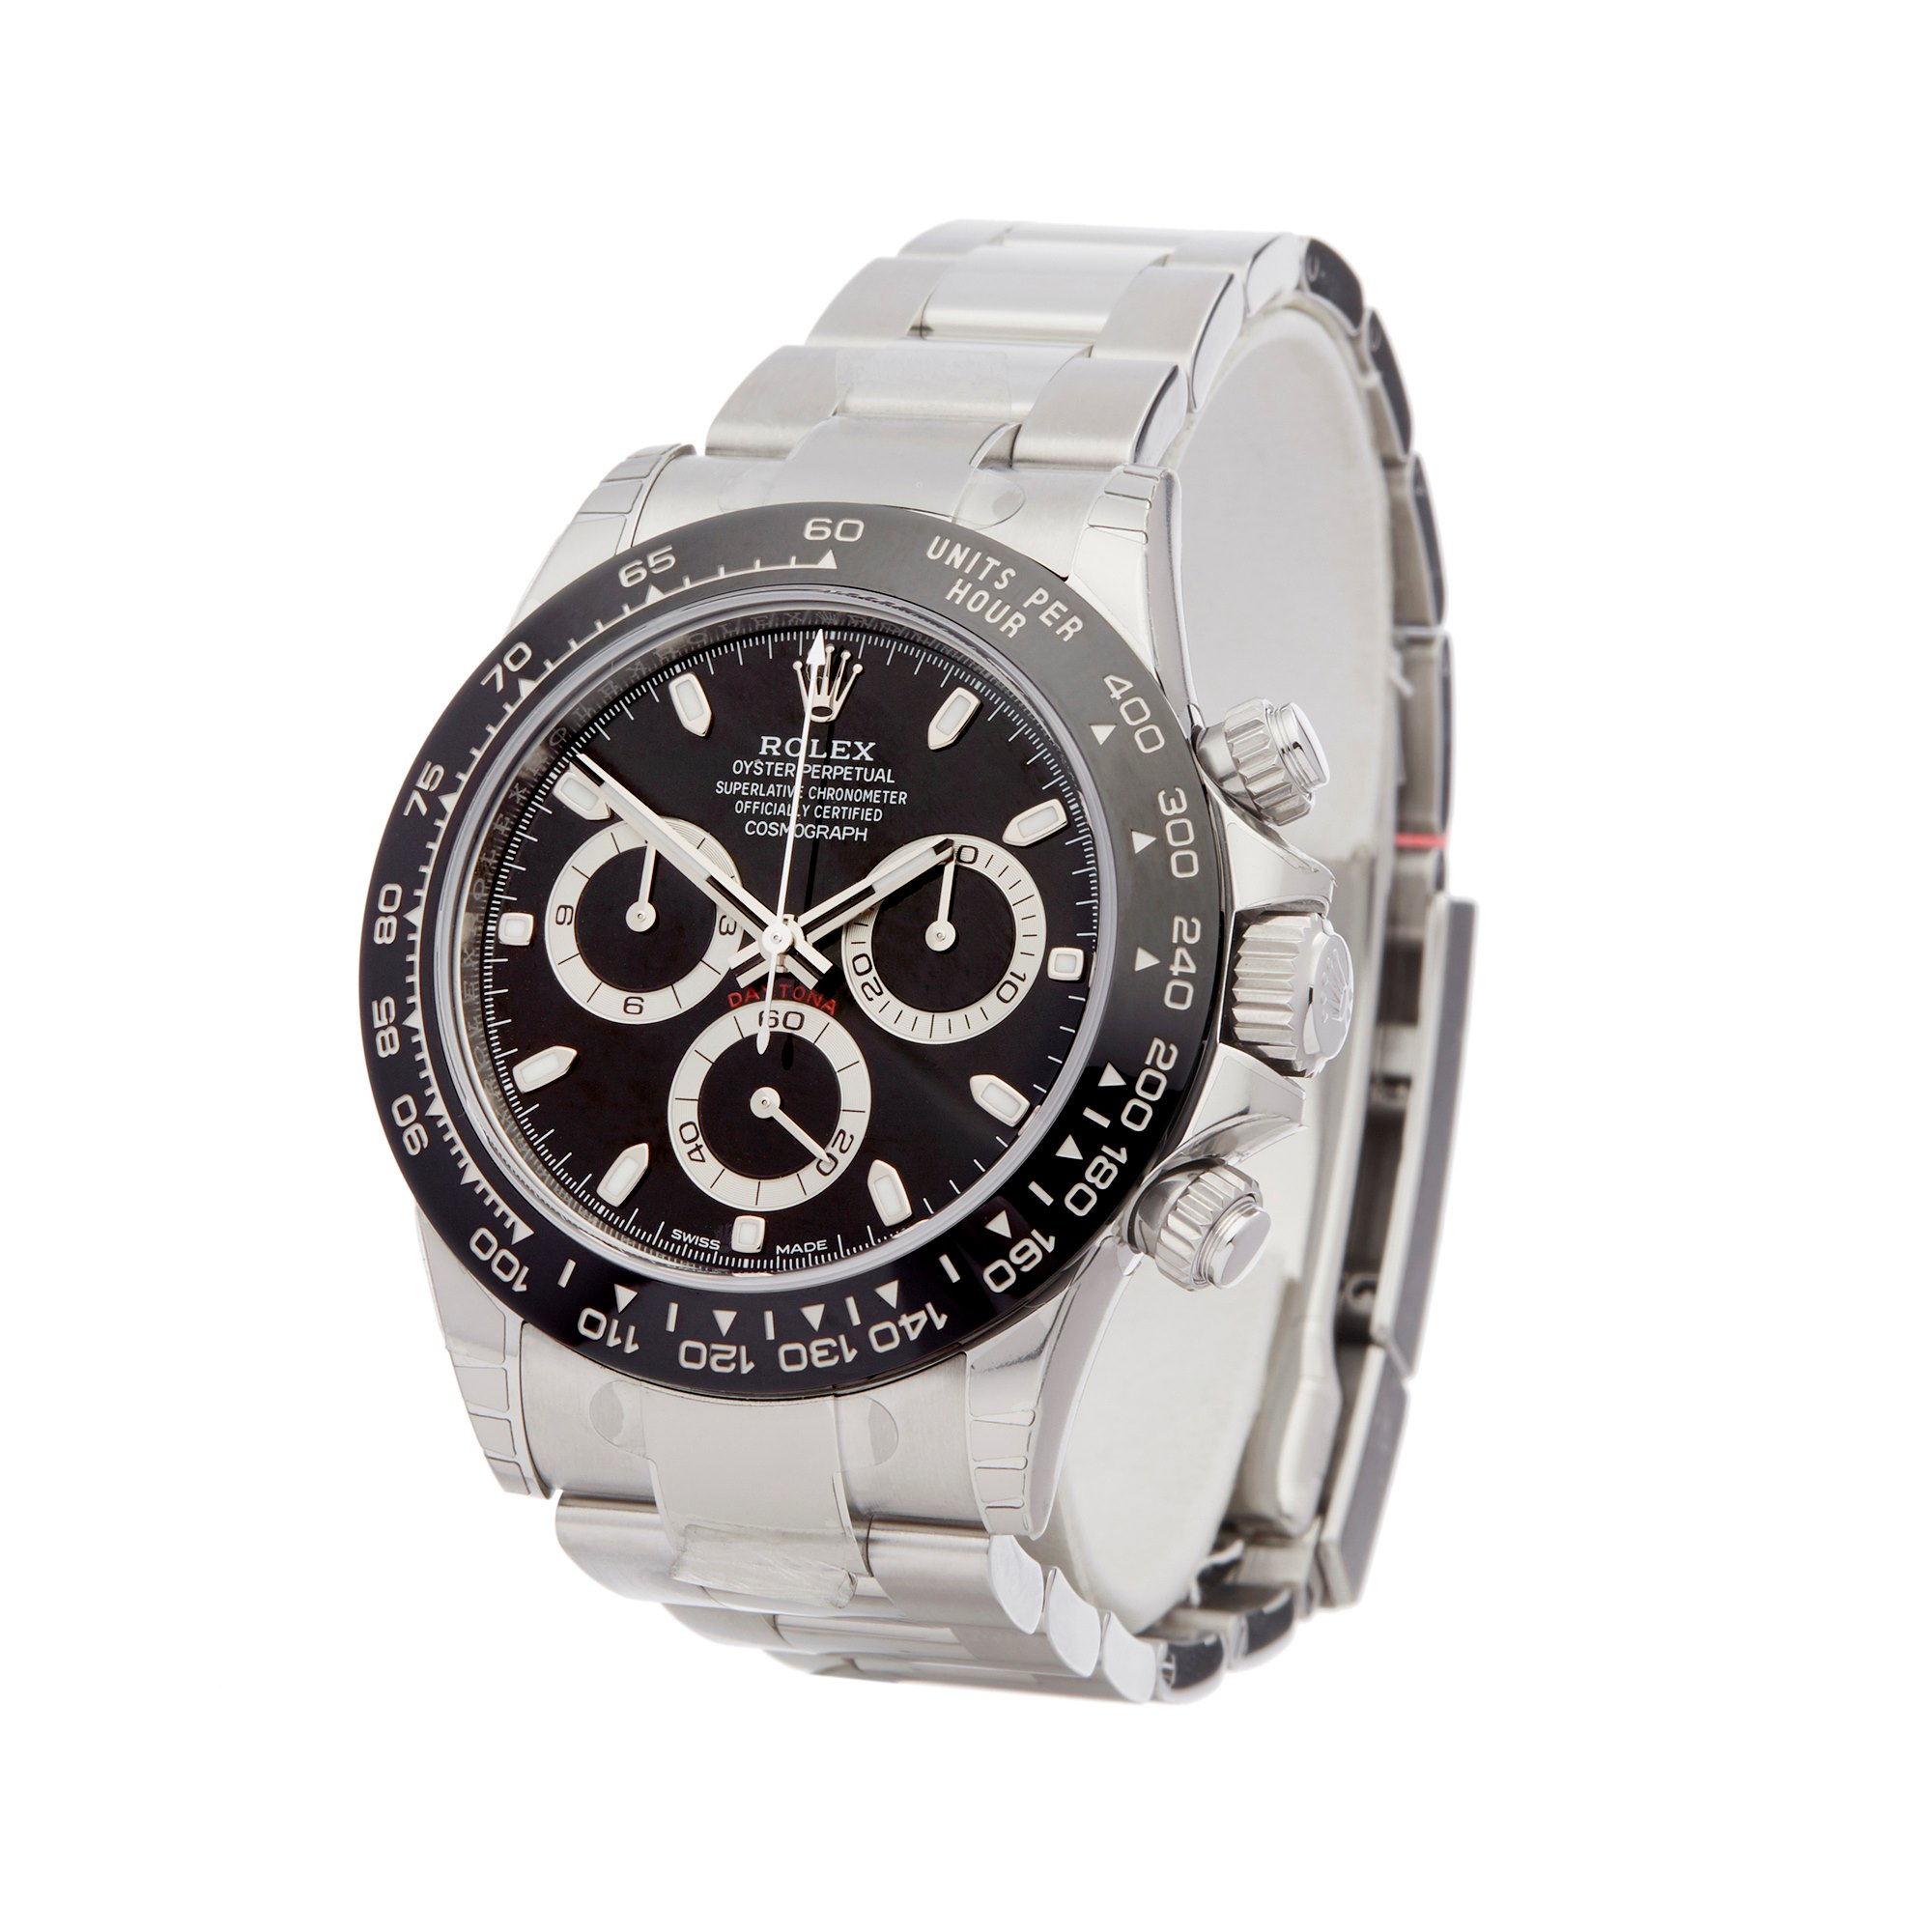 Rolex Daytona Chronograph NOS Stainless Steel 116500LN